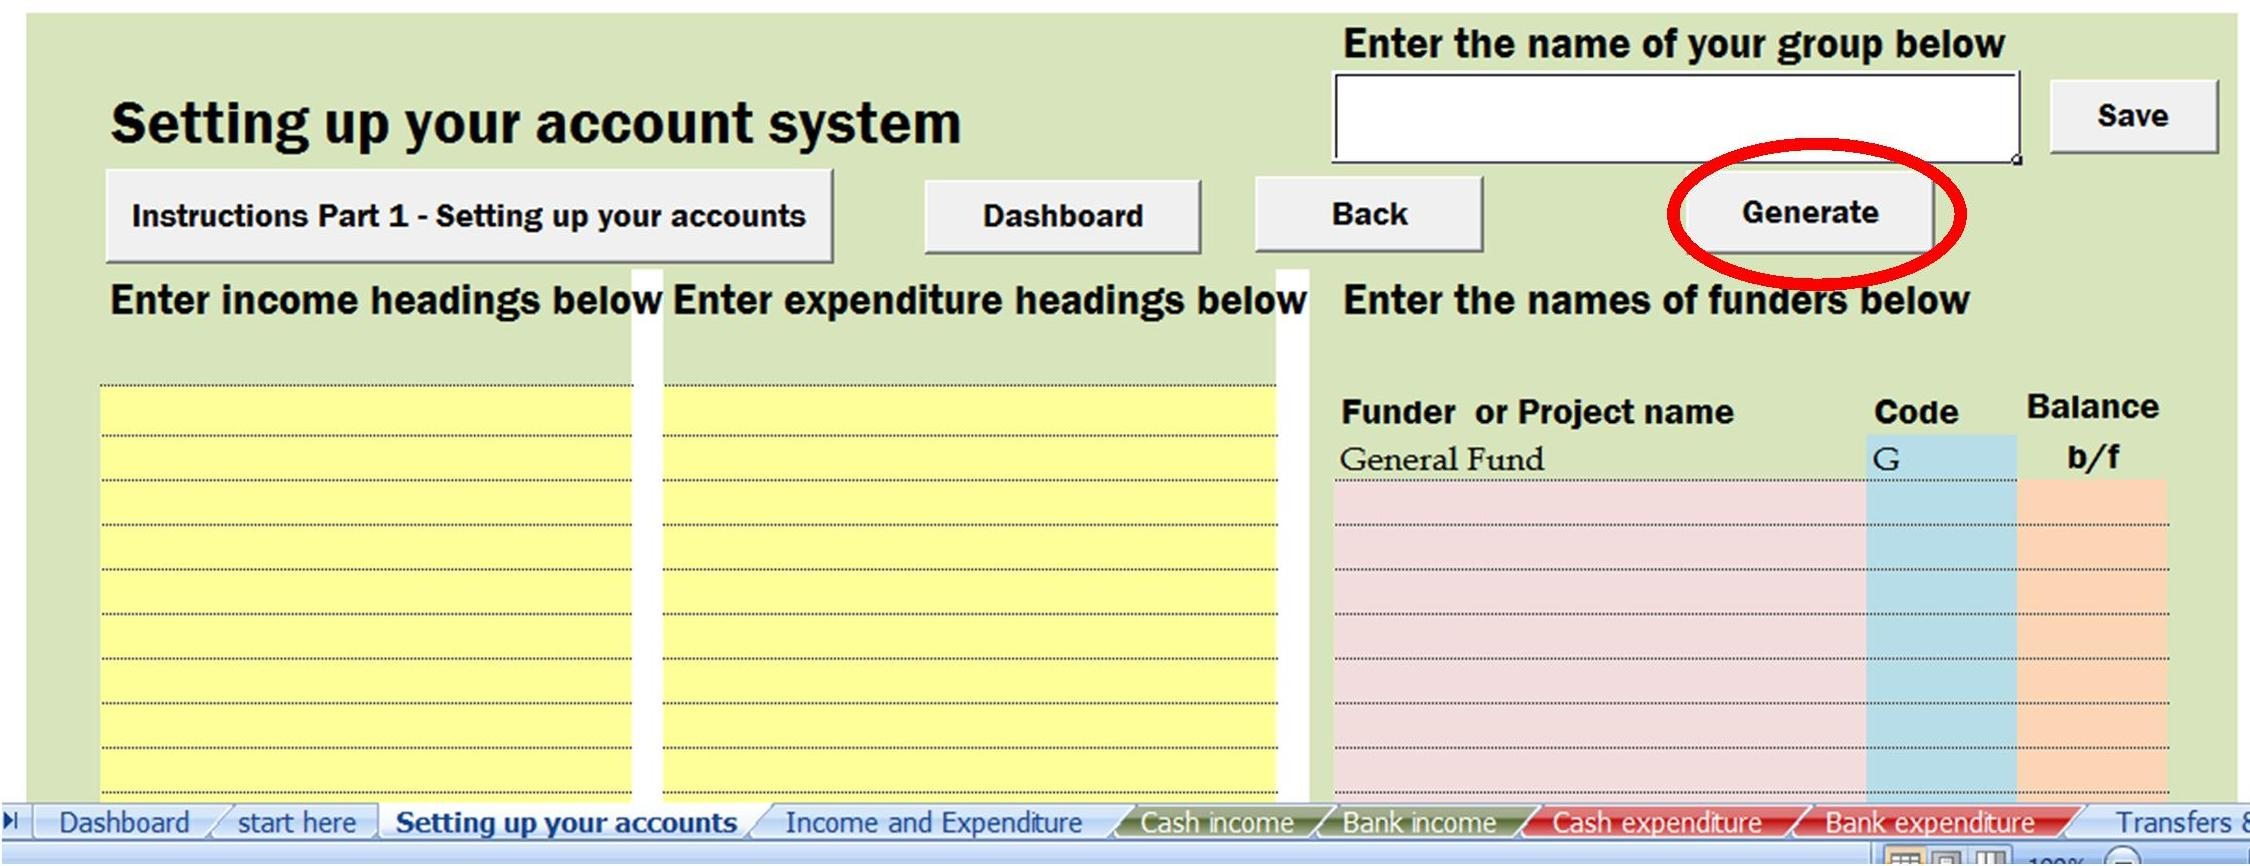 Annual Accounts System With Grant Tracking